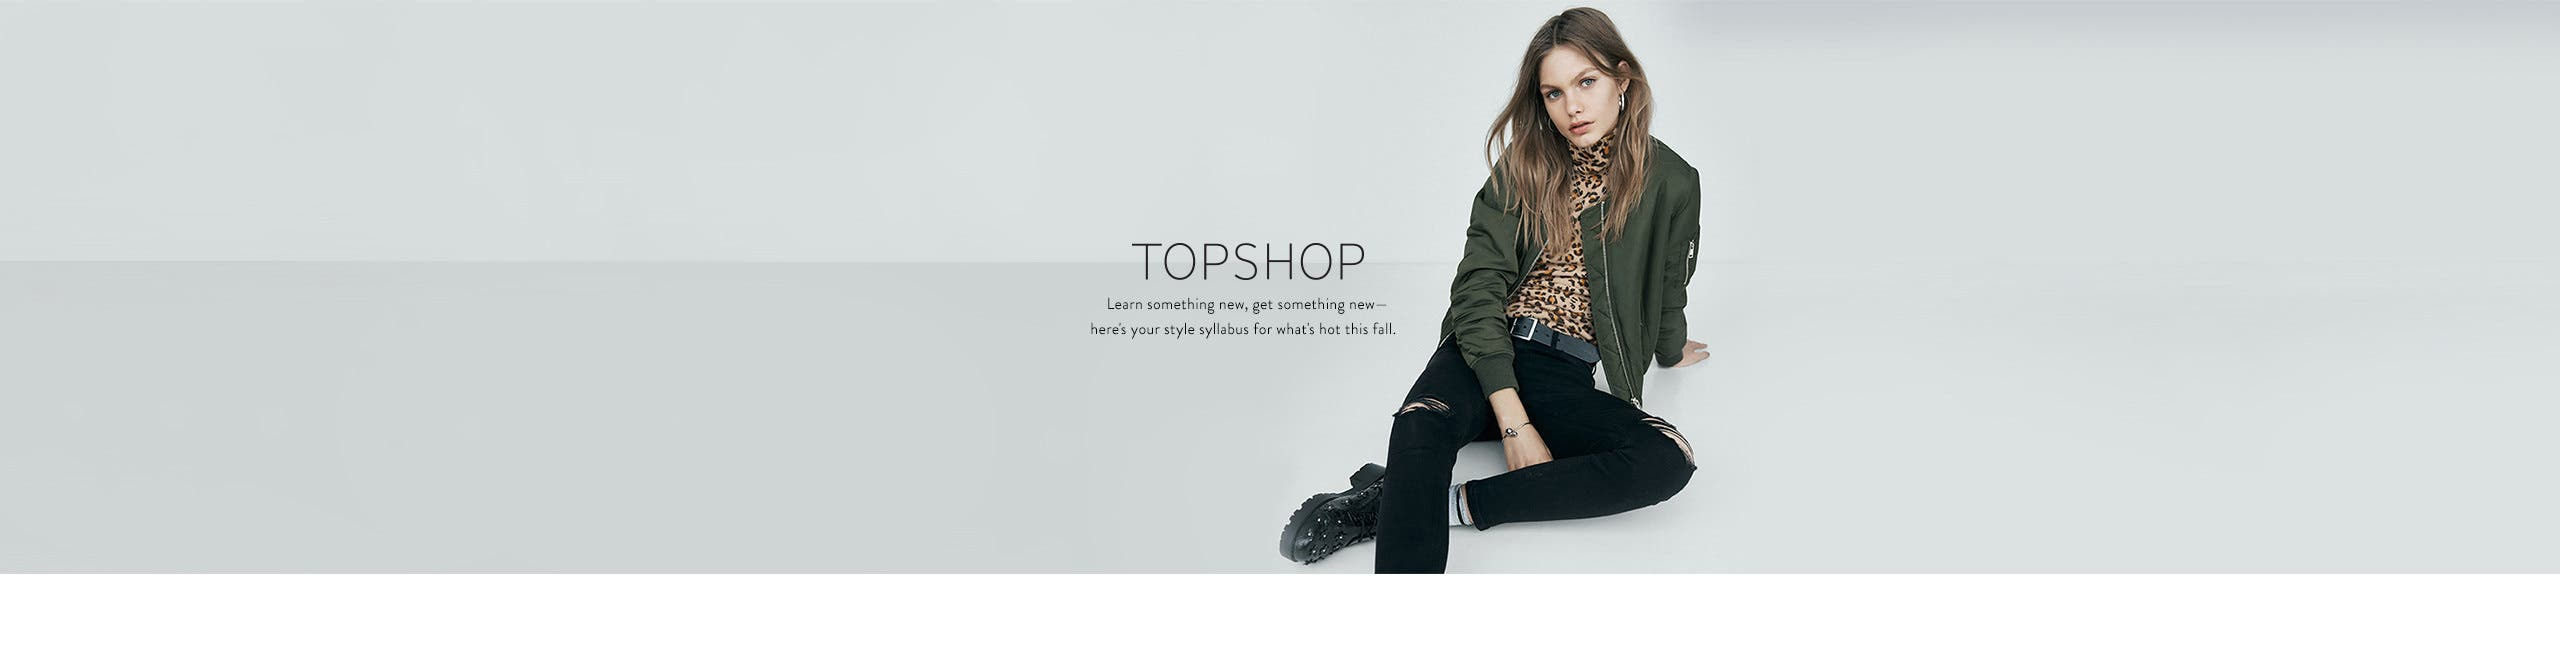 Topshop clothing and more.